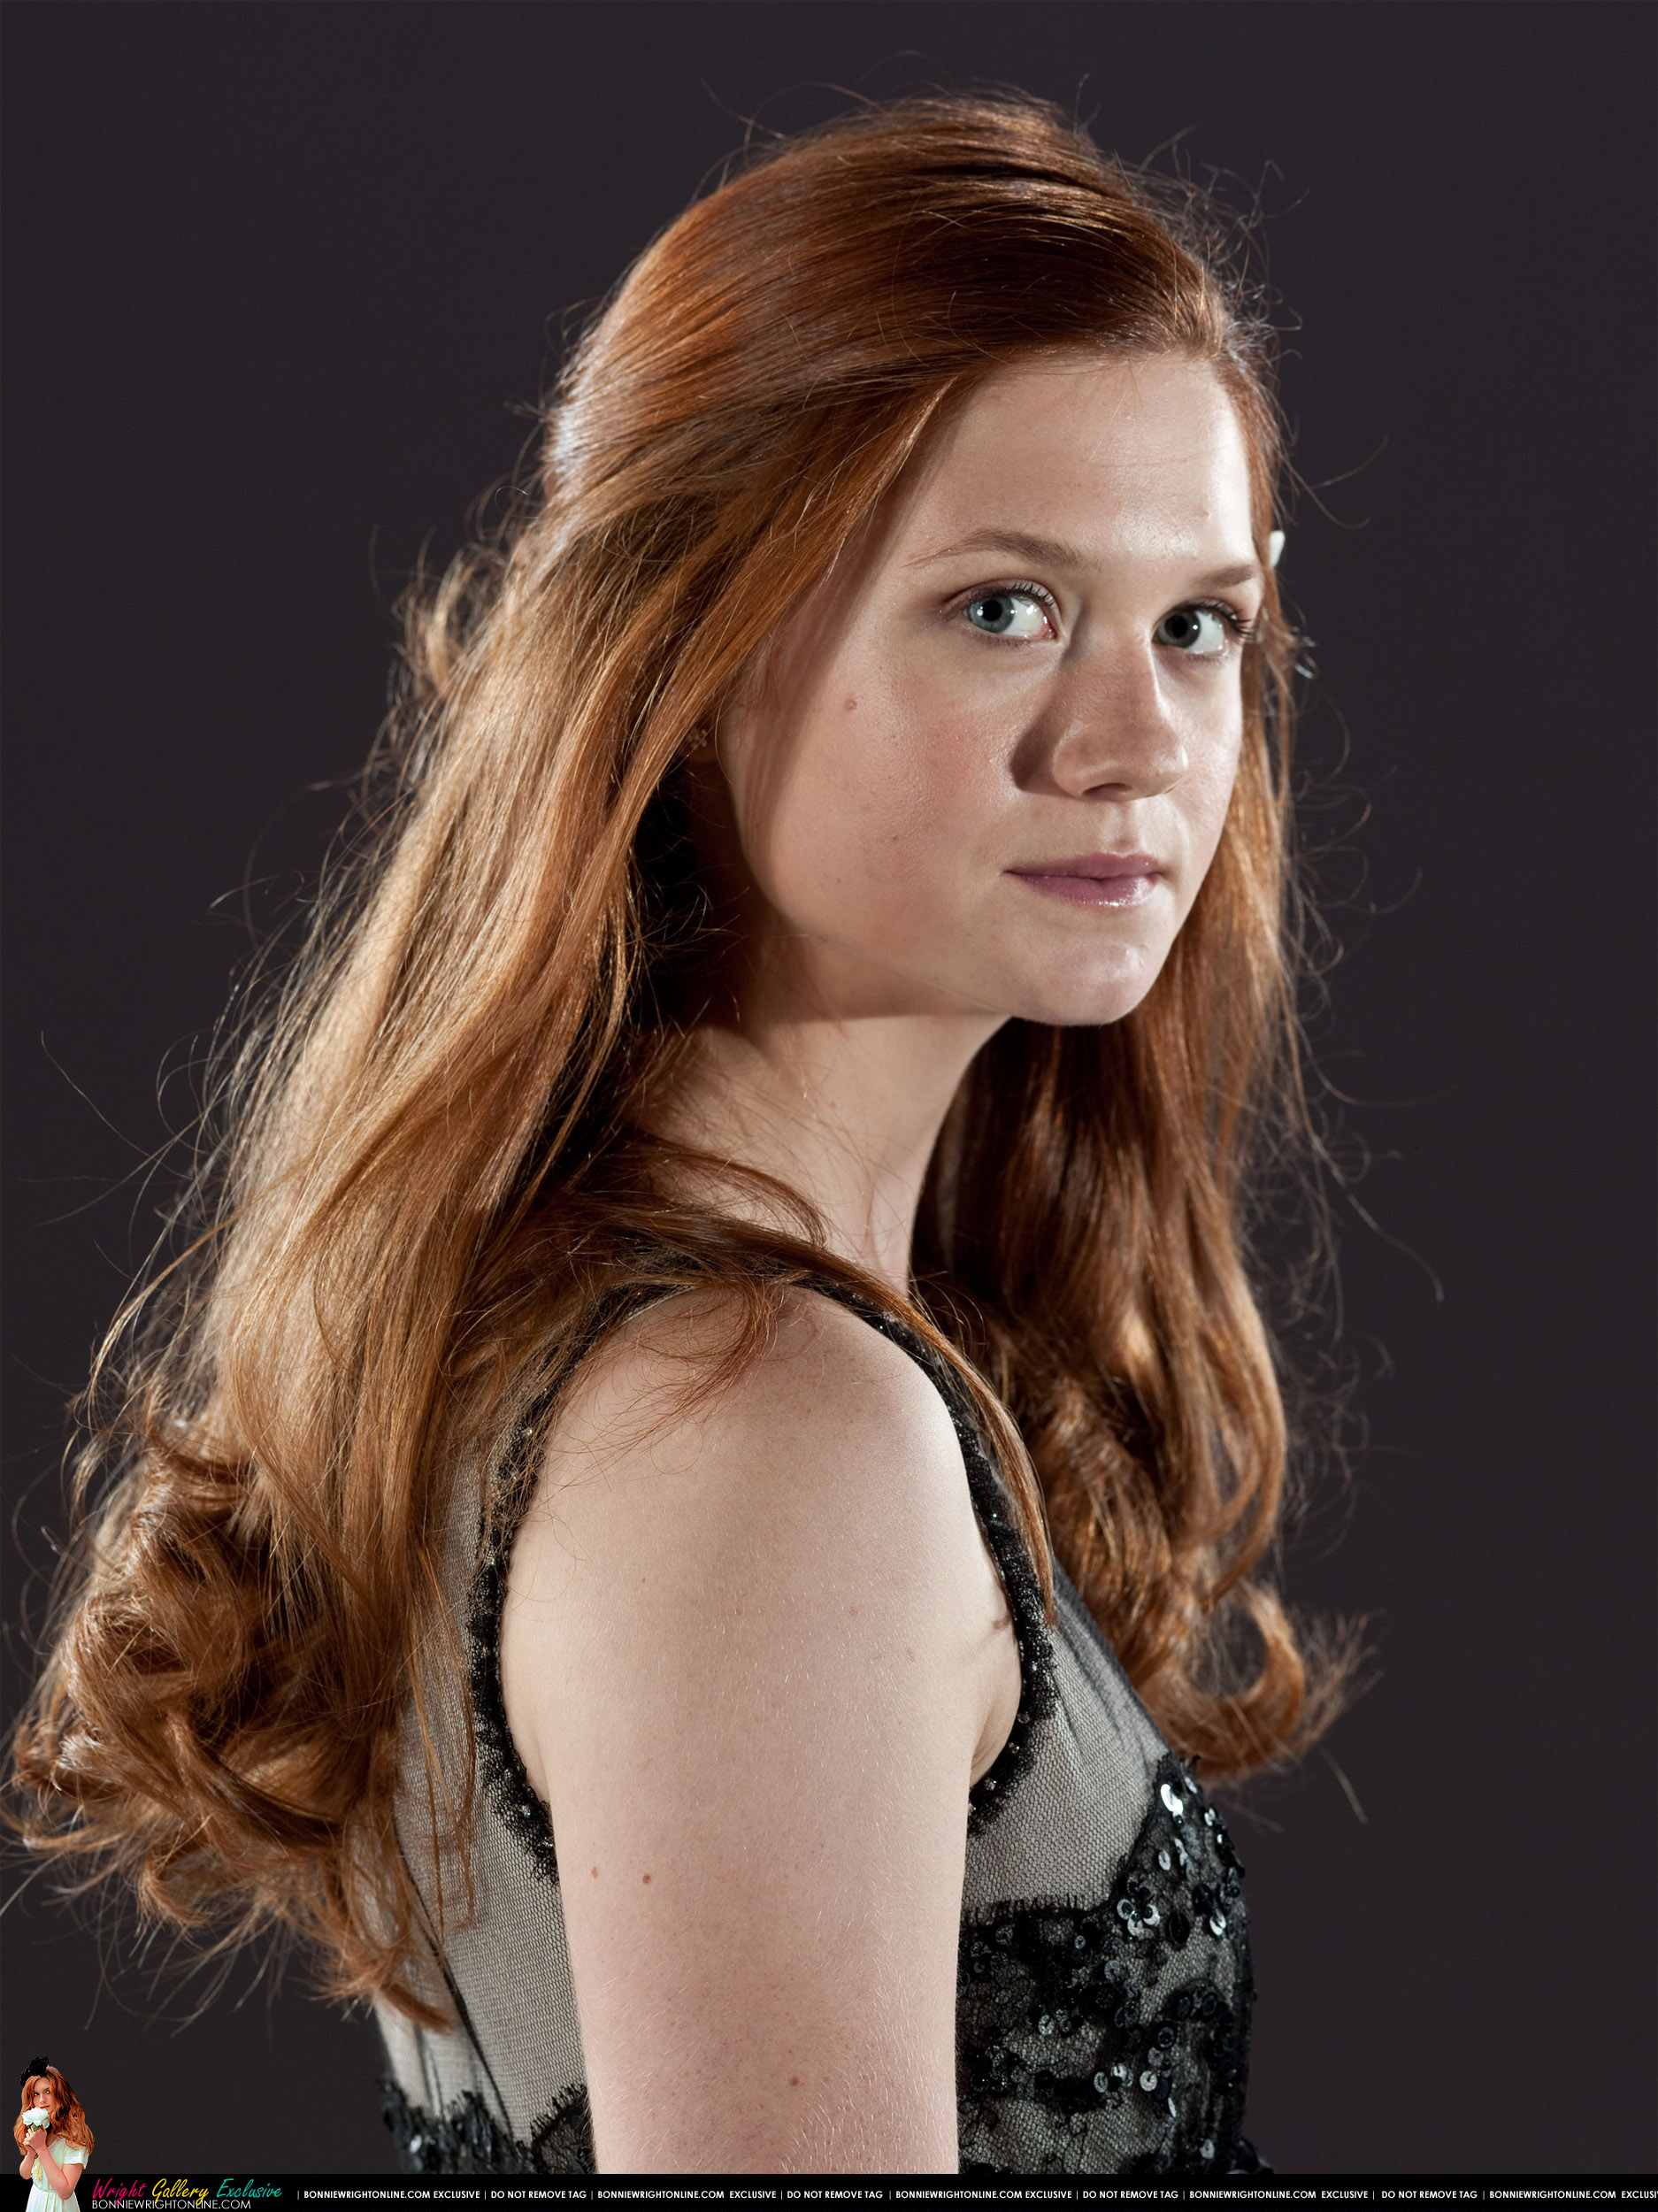 ginevra ginny weasley images ginny s beauty hd wallpaper and